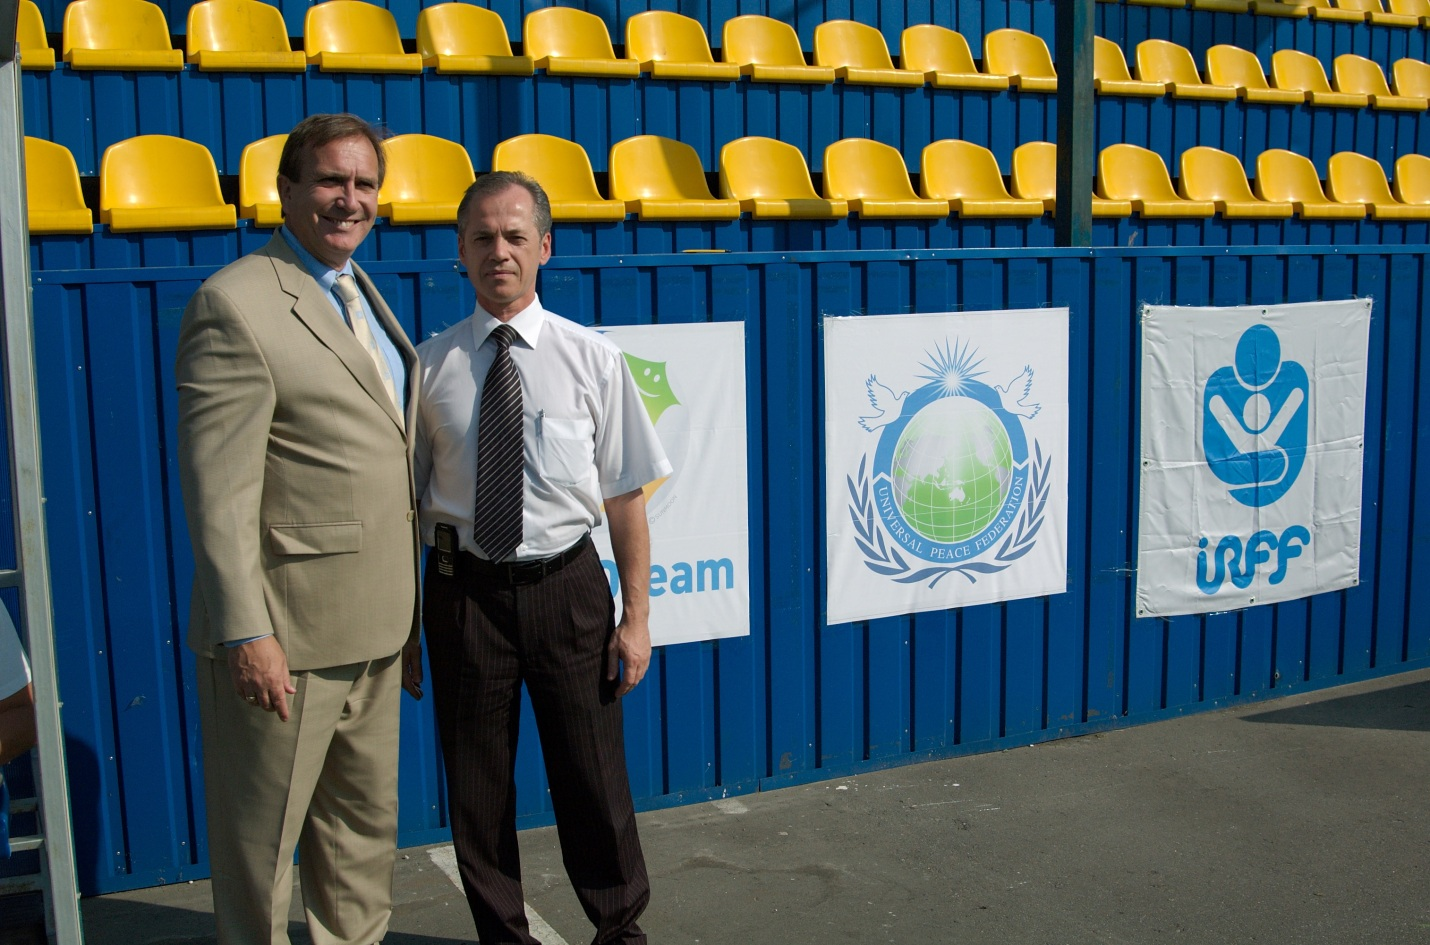 Tournament Coordinator Robert Gram together with Head of Kiev Soccer Federation Kochetov I.M., 2008.